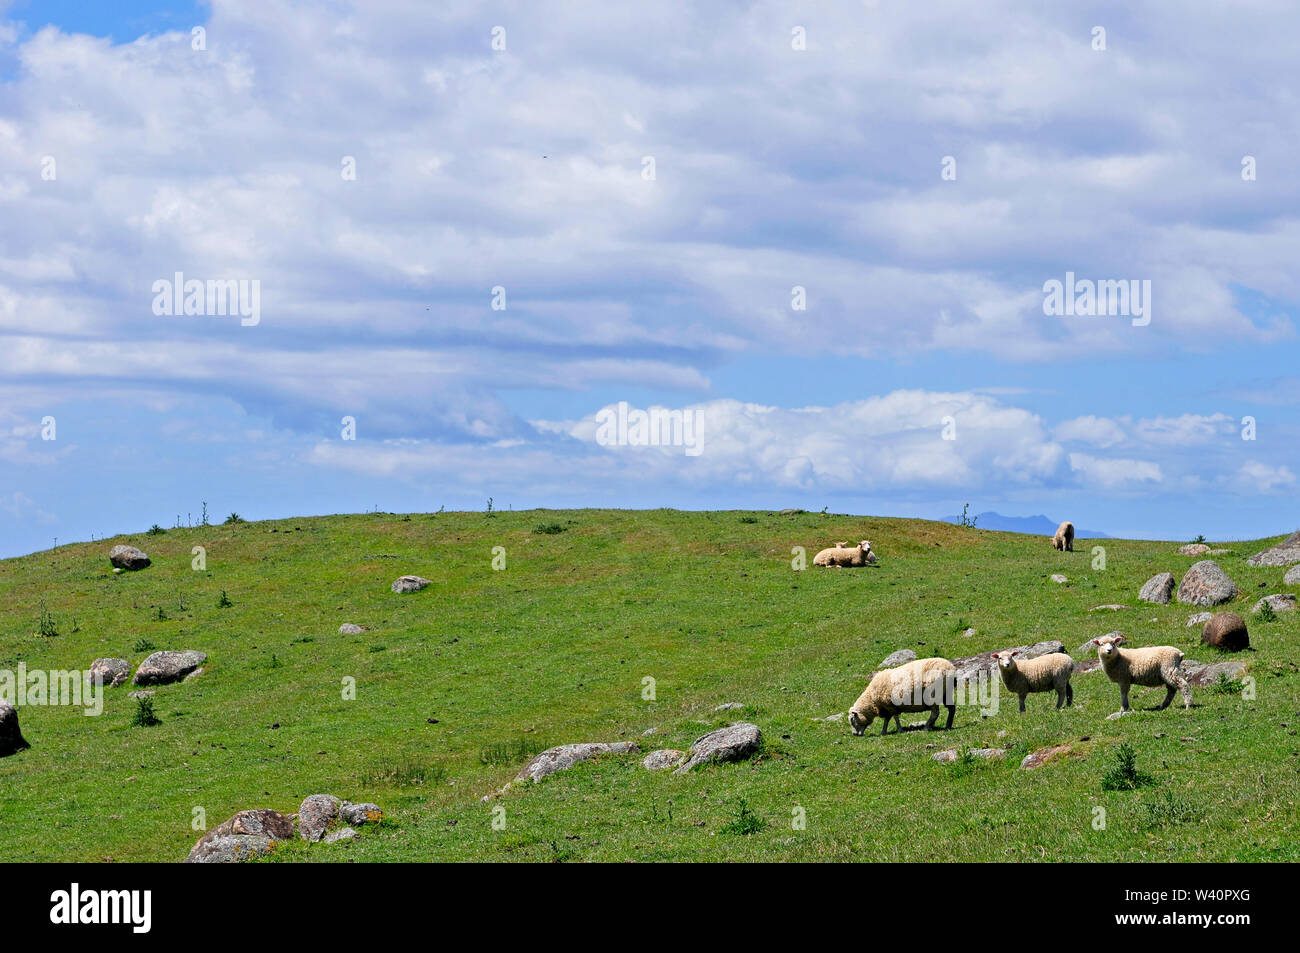 Kiwi land, sheep are relaxing on the lawn in a sunny day - Stock Image